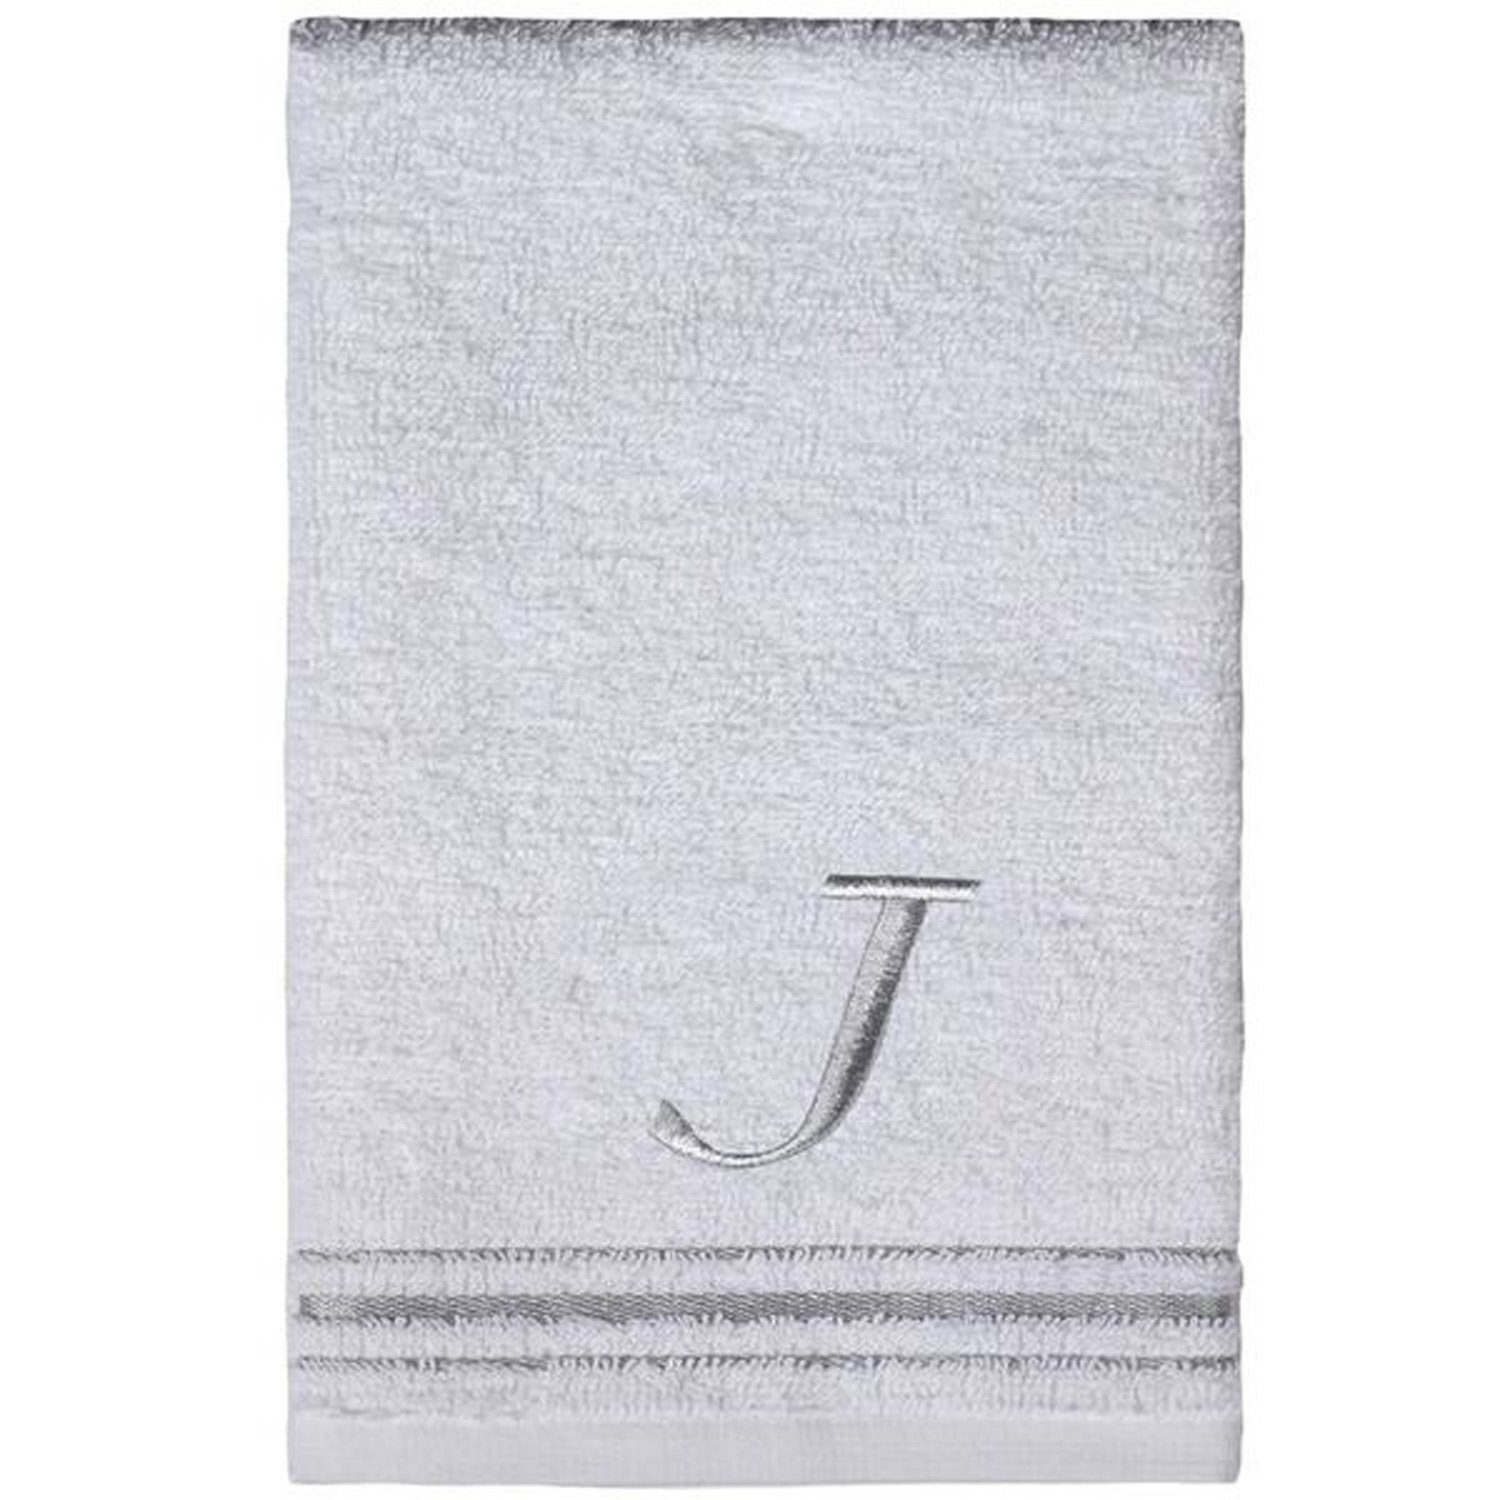 Saturday Knight Classic Script Monogram White Turkish Cotton Towel, 16-Inch by 25-Inch Hand Towel, Set of 2, Letter J